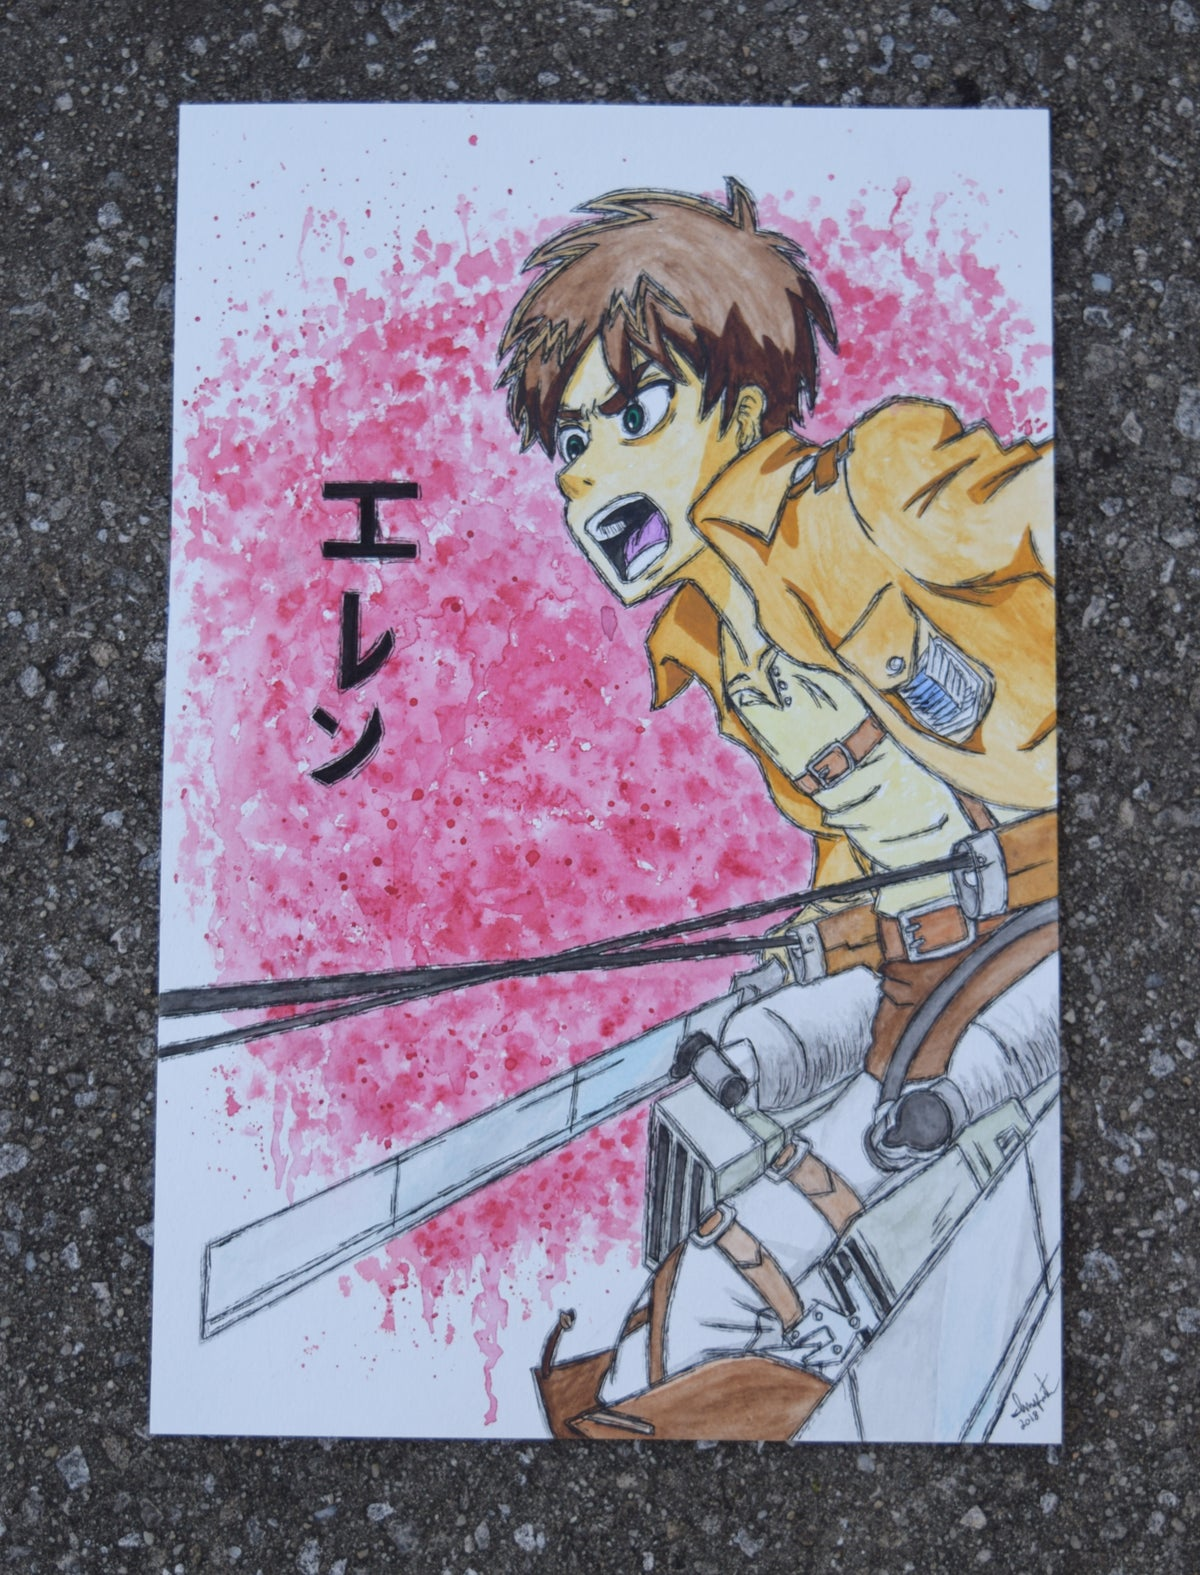 Image of Eren Yeager (Attack on Titan)